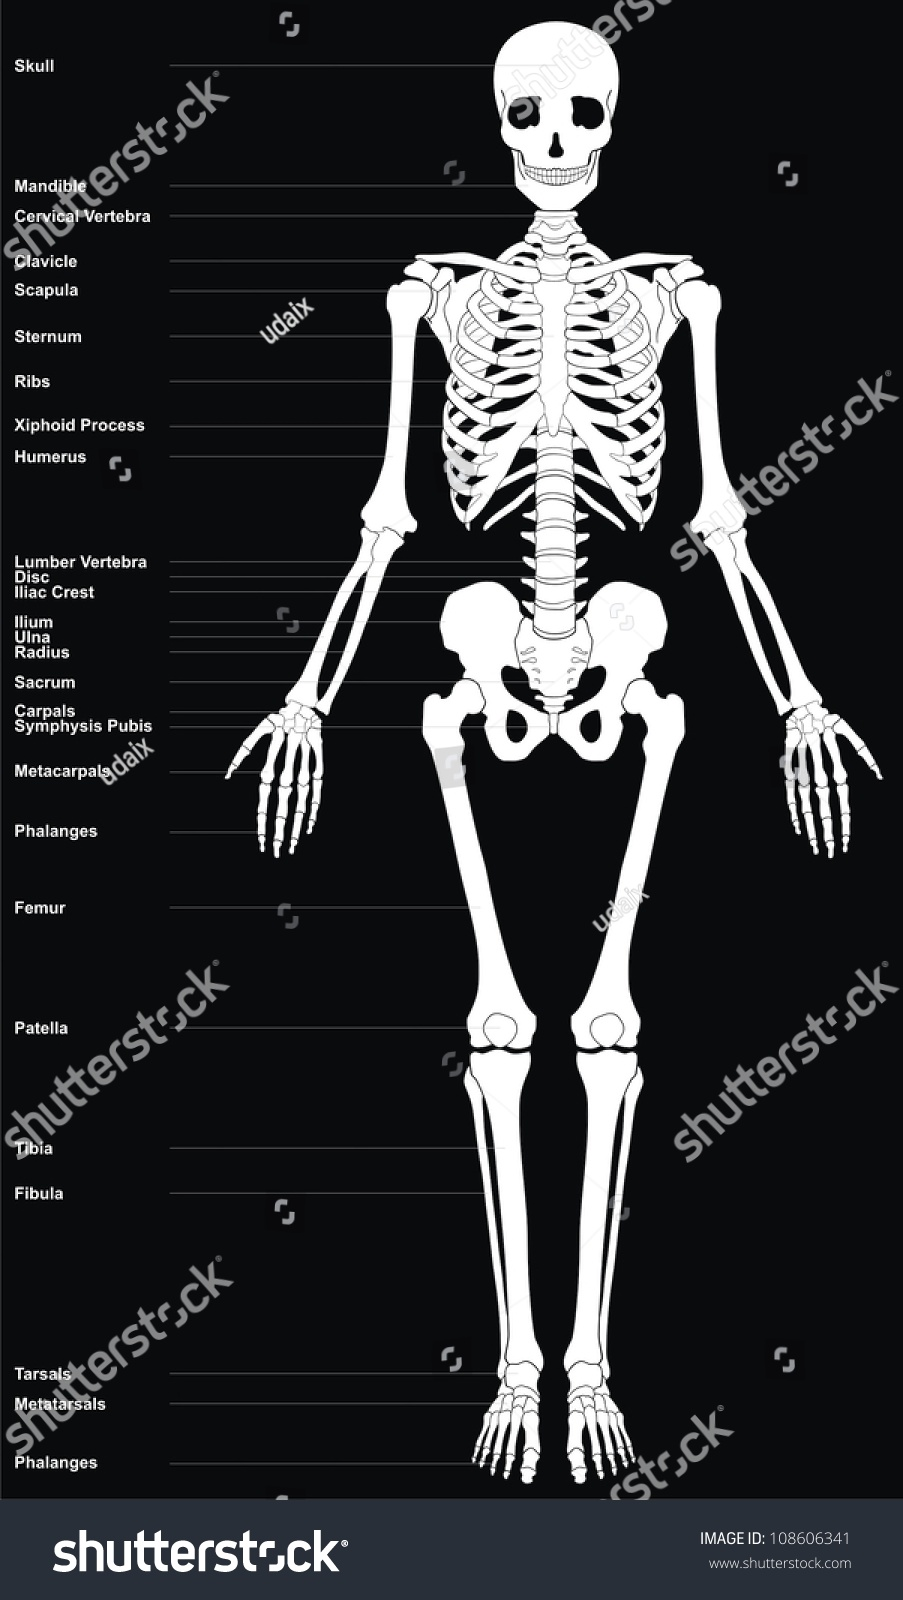 Royalty Free Stock Illustration Of Human Skeleton All Major Bones